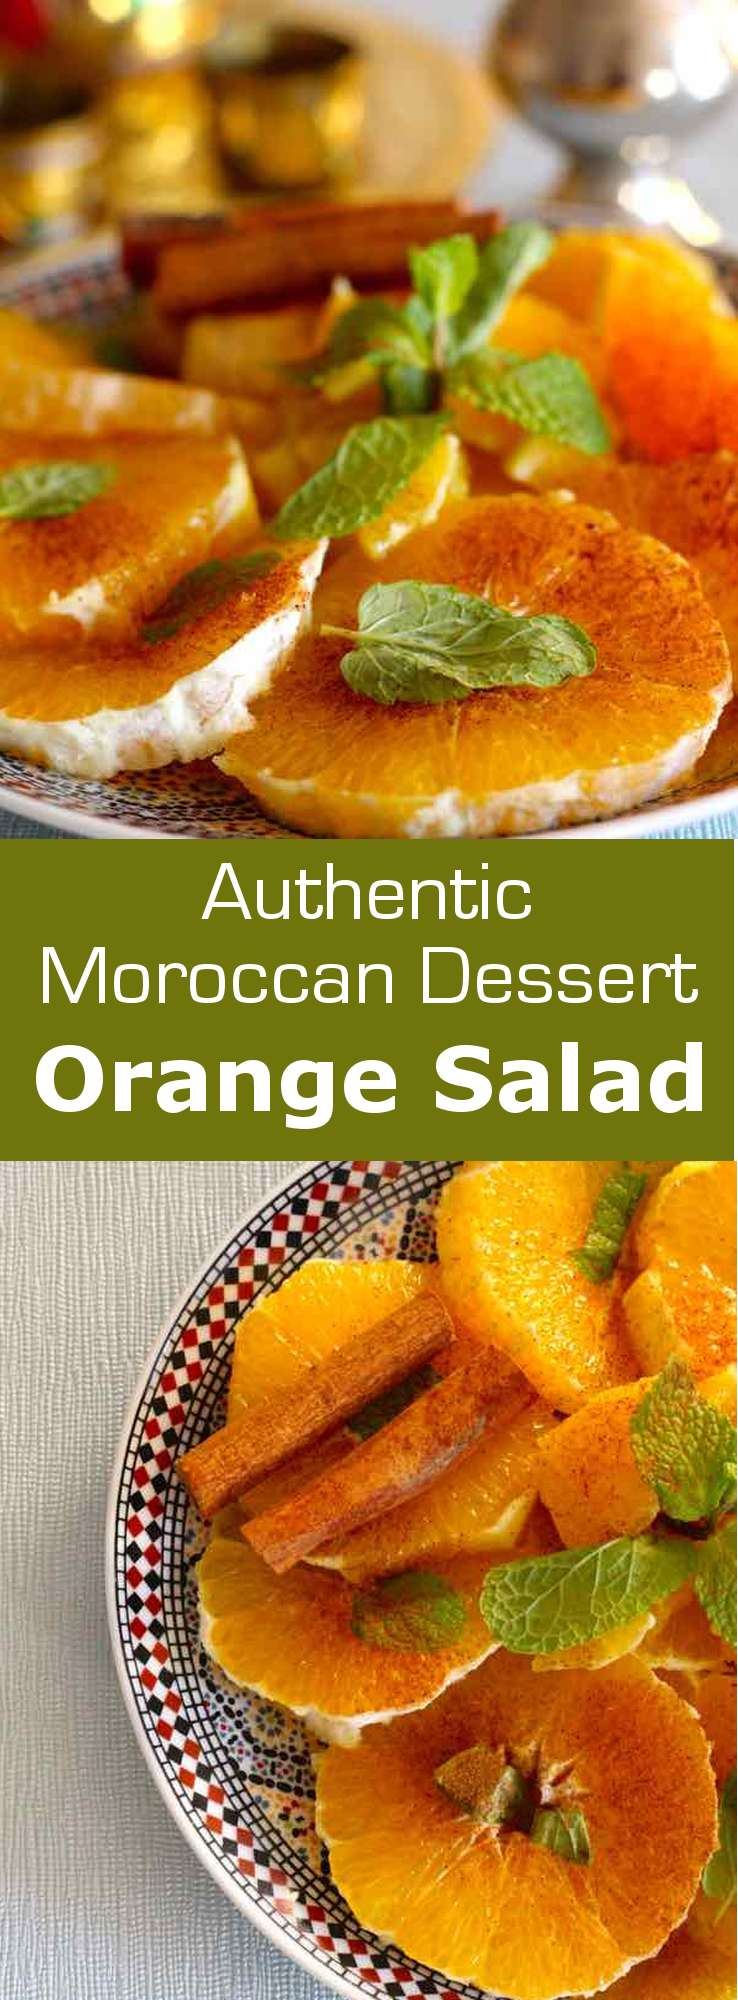 Moroccan orange salad with cinnamon is a combination of soft and subtle flavors that perfectly complement an often rich and hearty North African meal. #Moroccan #Morocco #196flavors